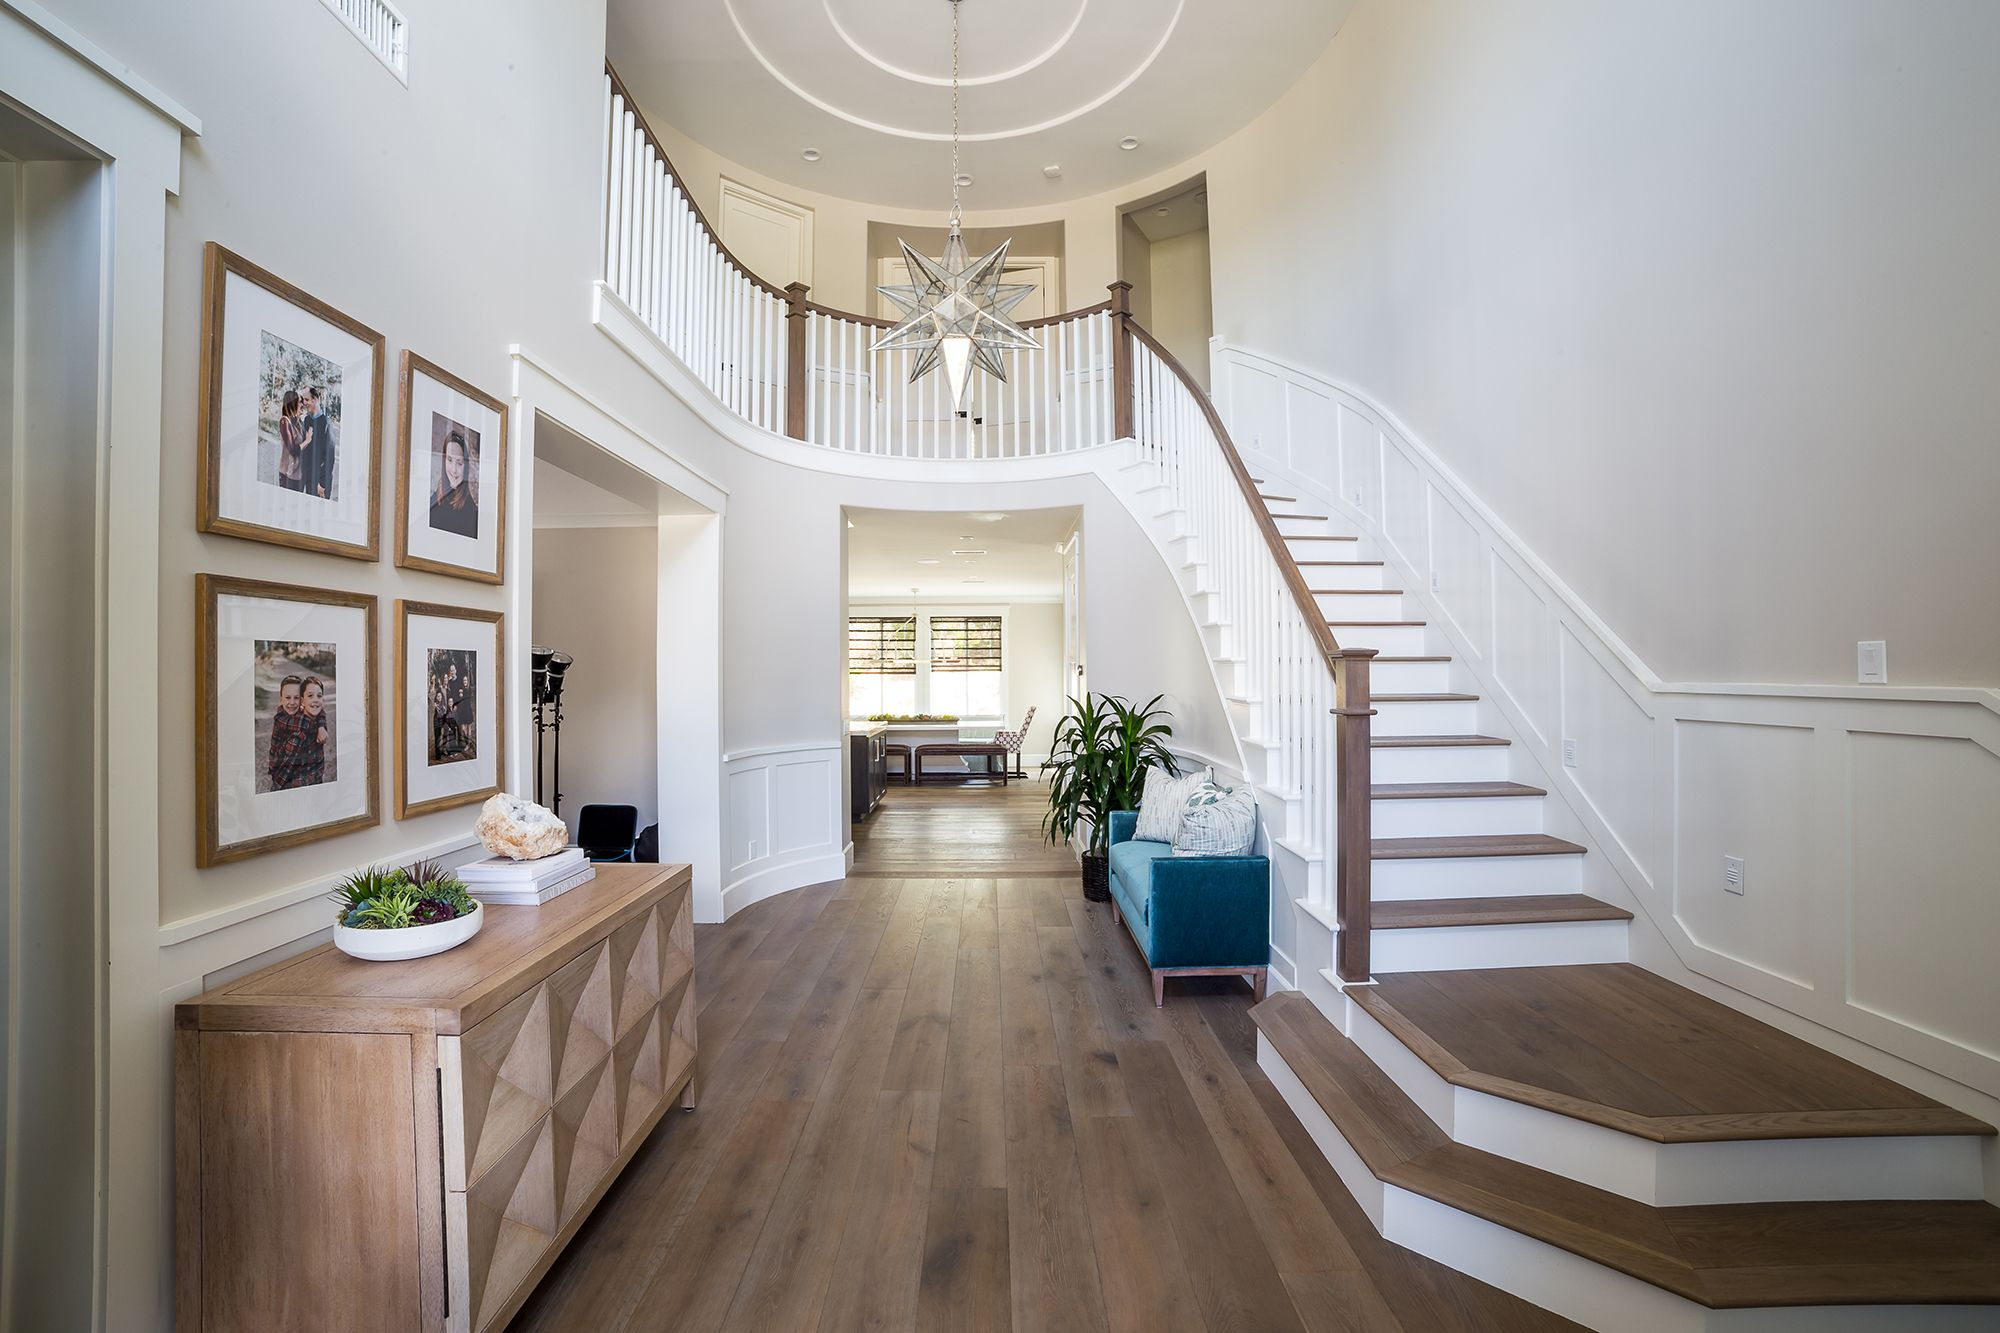 at home interior design consultants home interior renovations by remodeling consultants Custom home remodeling services by San Diegou0027s Lars Remodeling u0026 Design